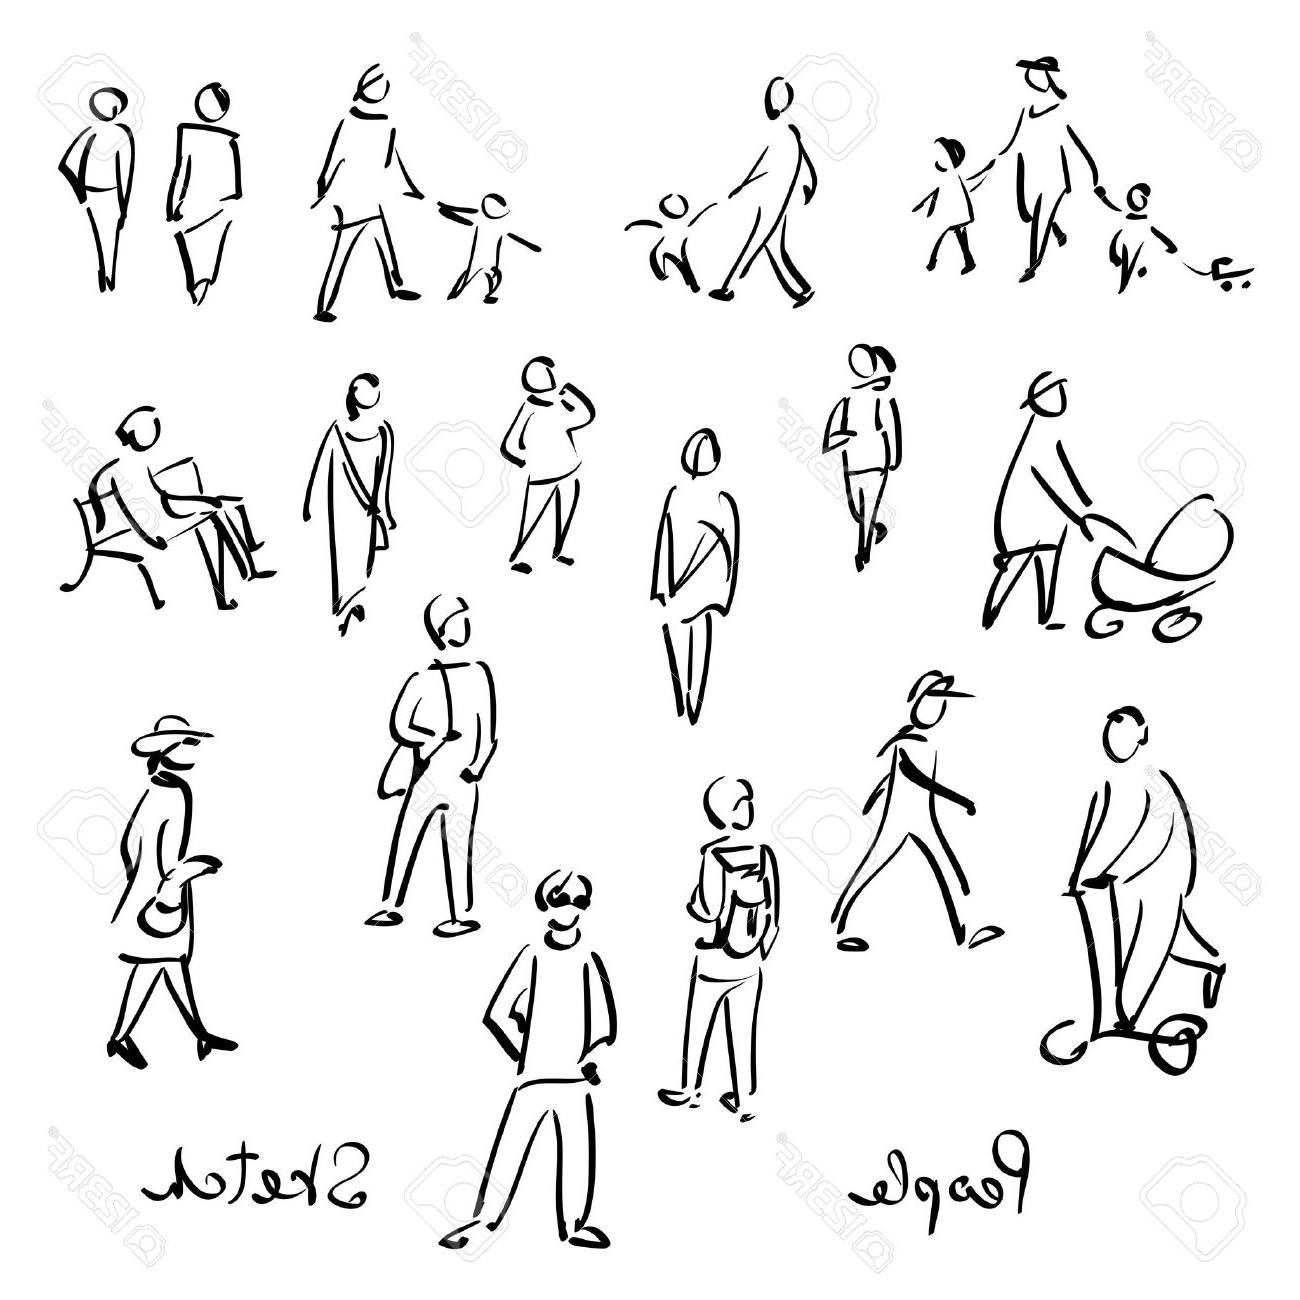 1300x1300 Best Hd Vector People Outline Image Free Vector Art, Images